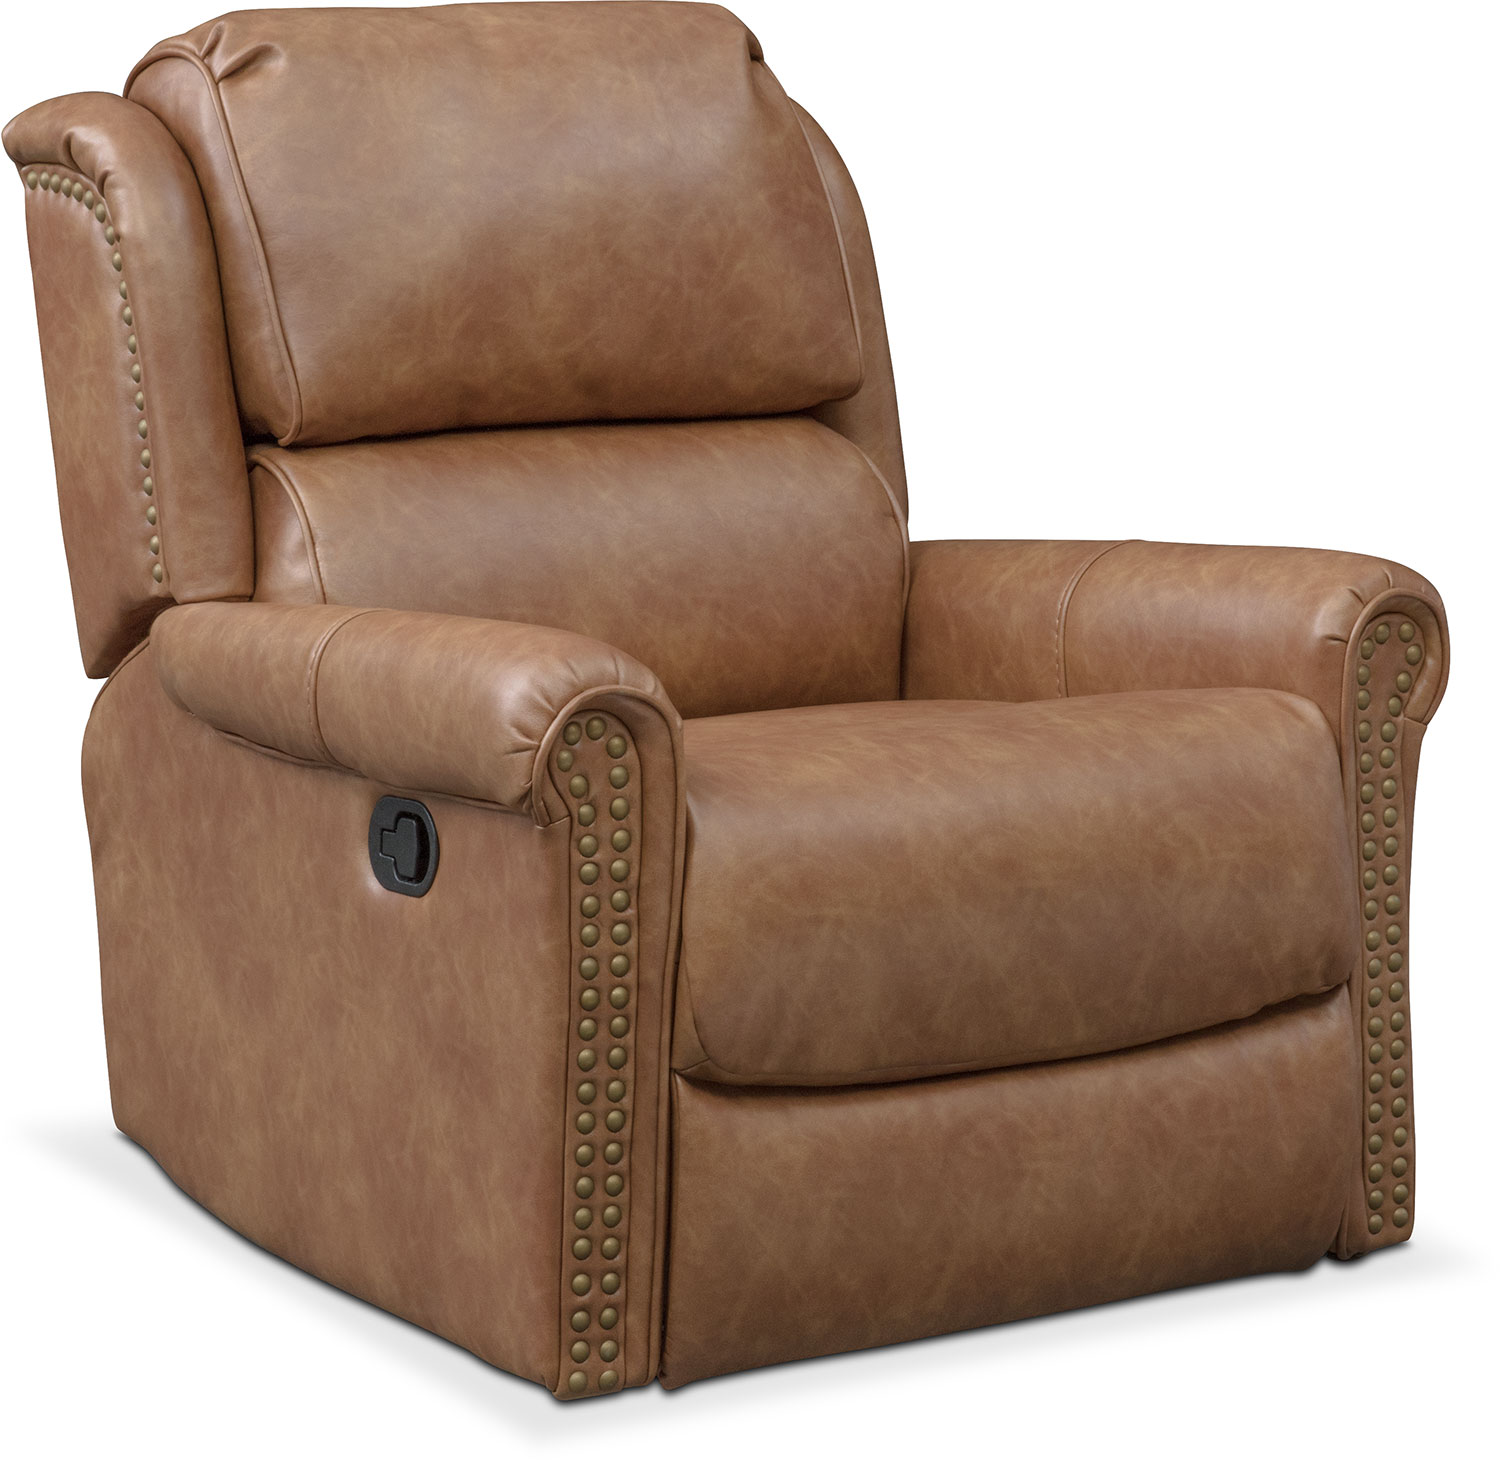 Courtland Glider Recliner | Value City Furniture and Mattresses